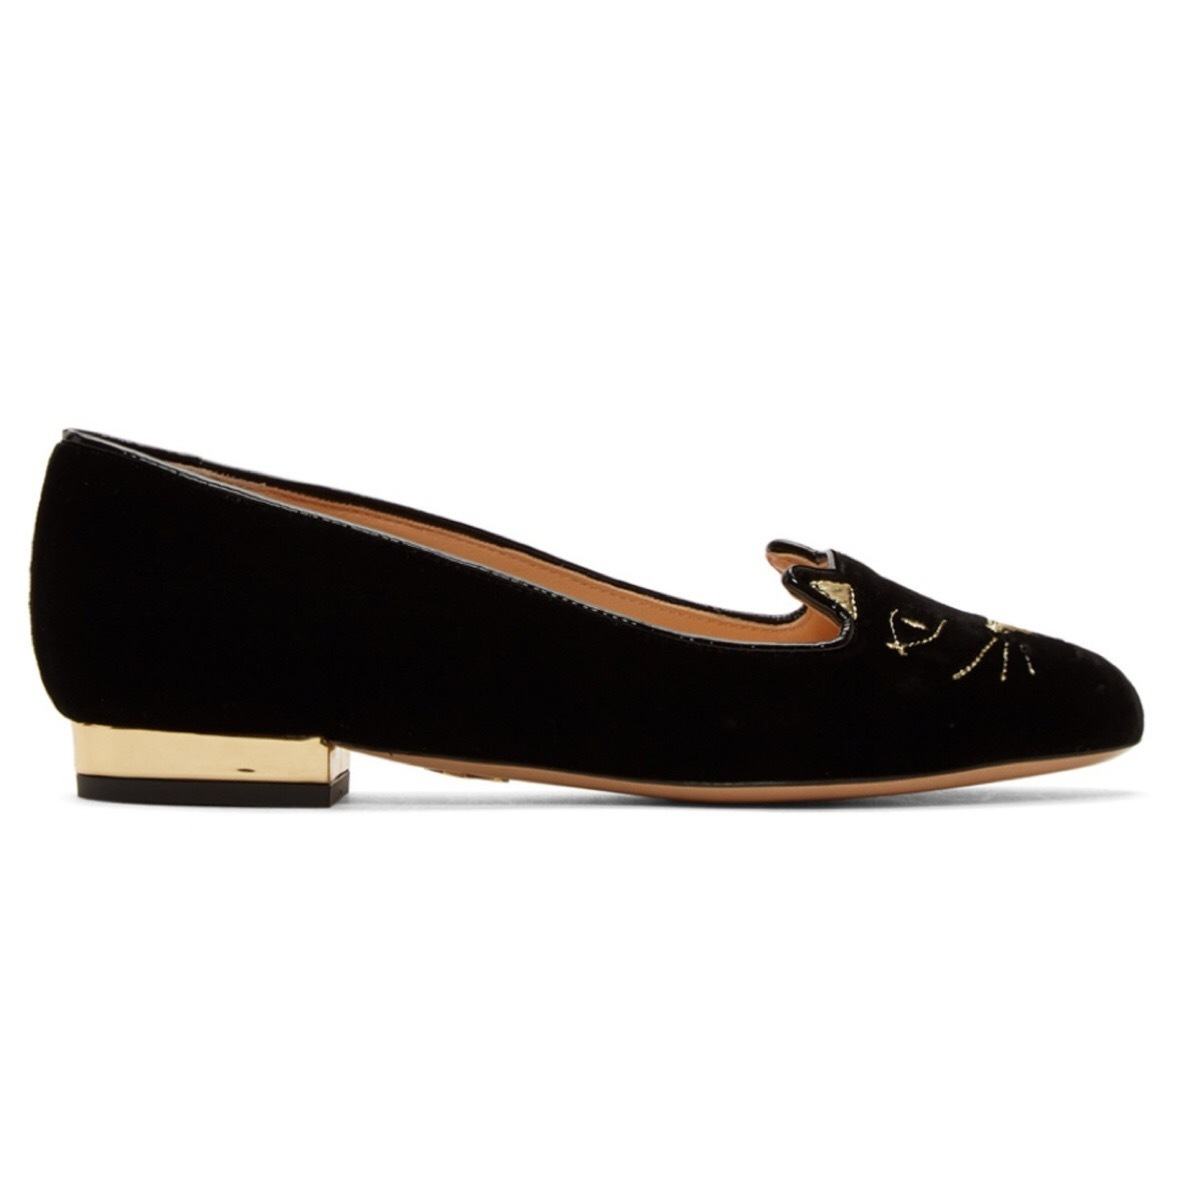 shop charlotte olympia shoes